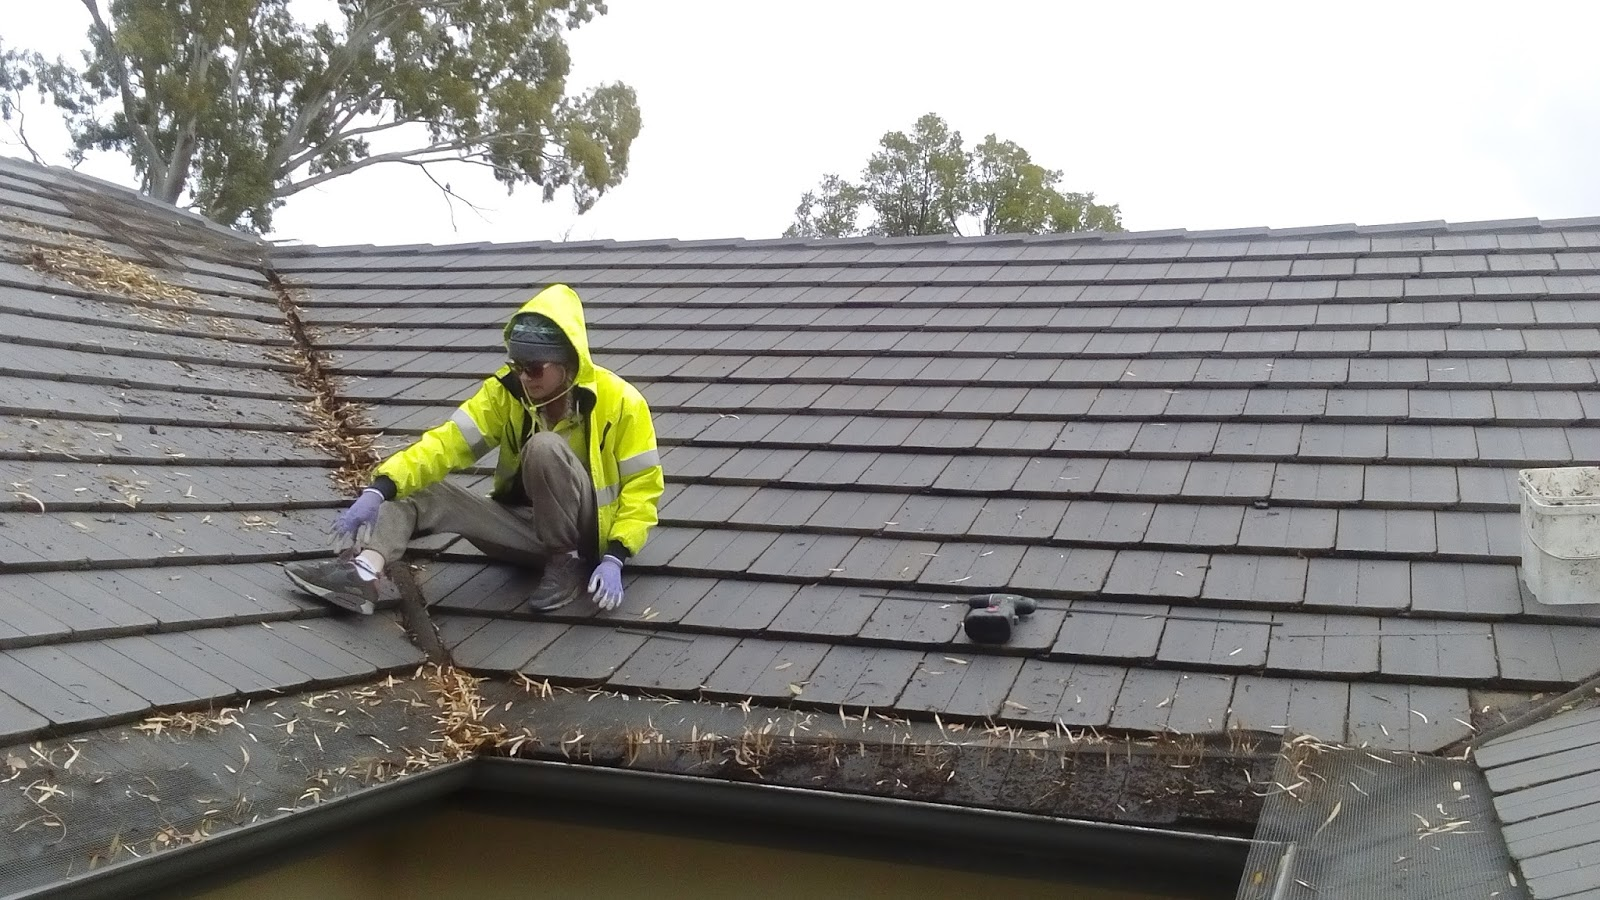 Gutter cleaning blog for clean pro gutter cleaning 6 of the most common things youll find gutter cleaning solutioingenieria Image collections